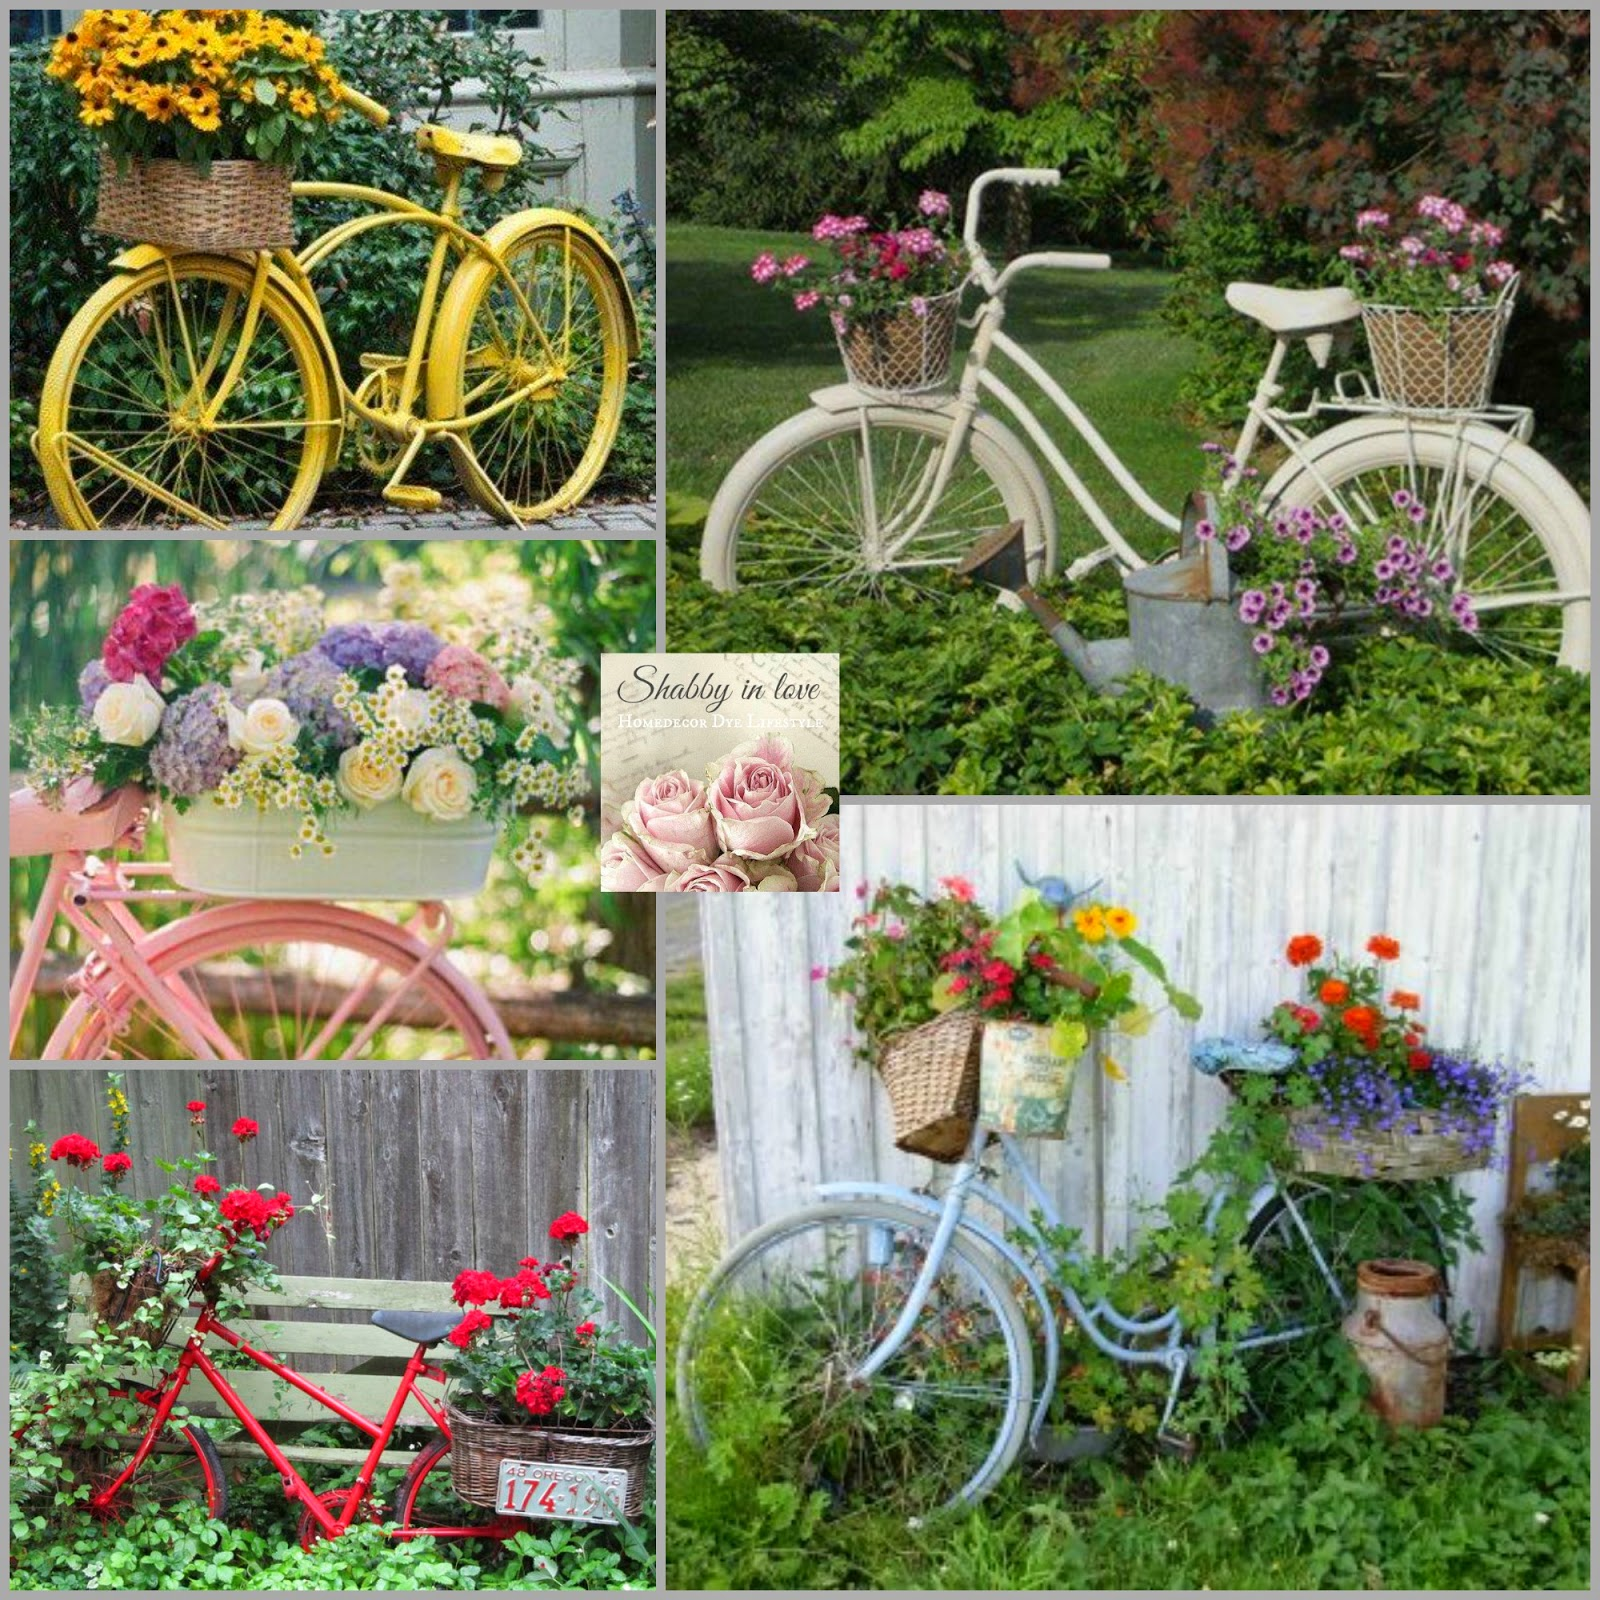 Shabby in love lovely garden container ideas for Garden decorations to make